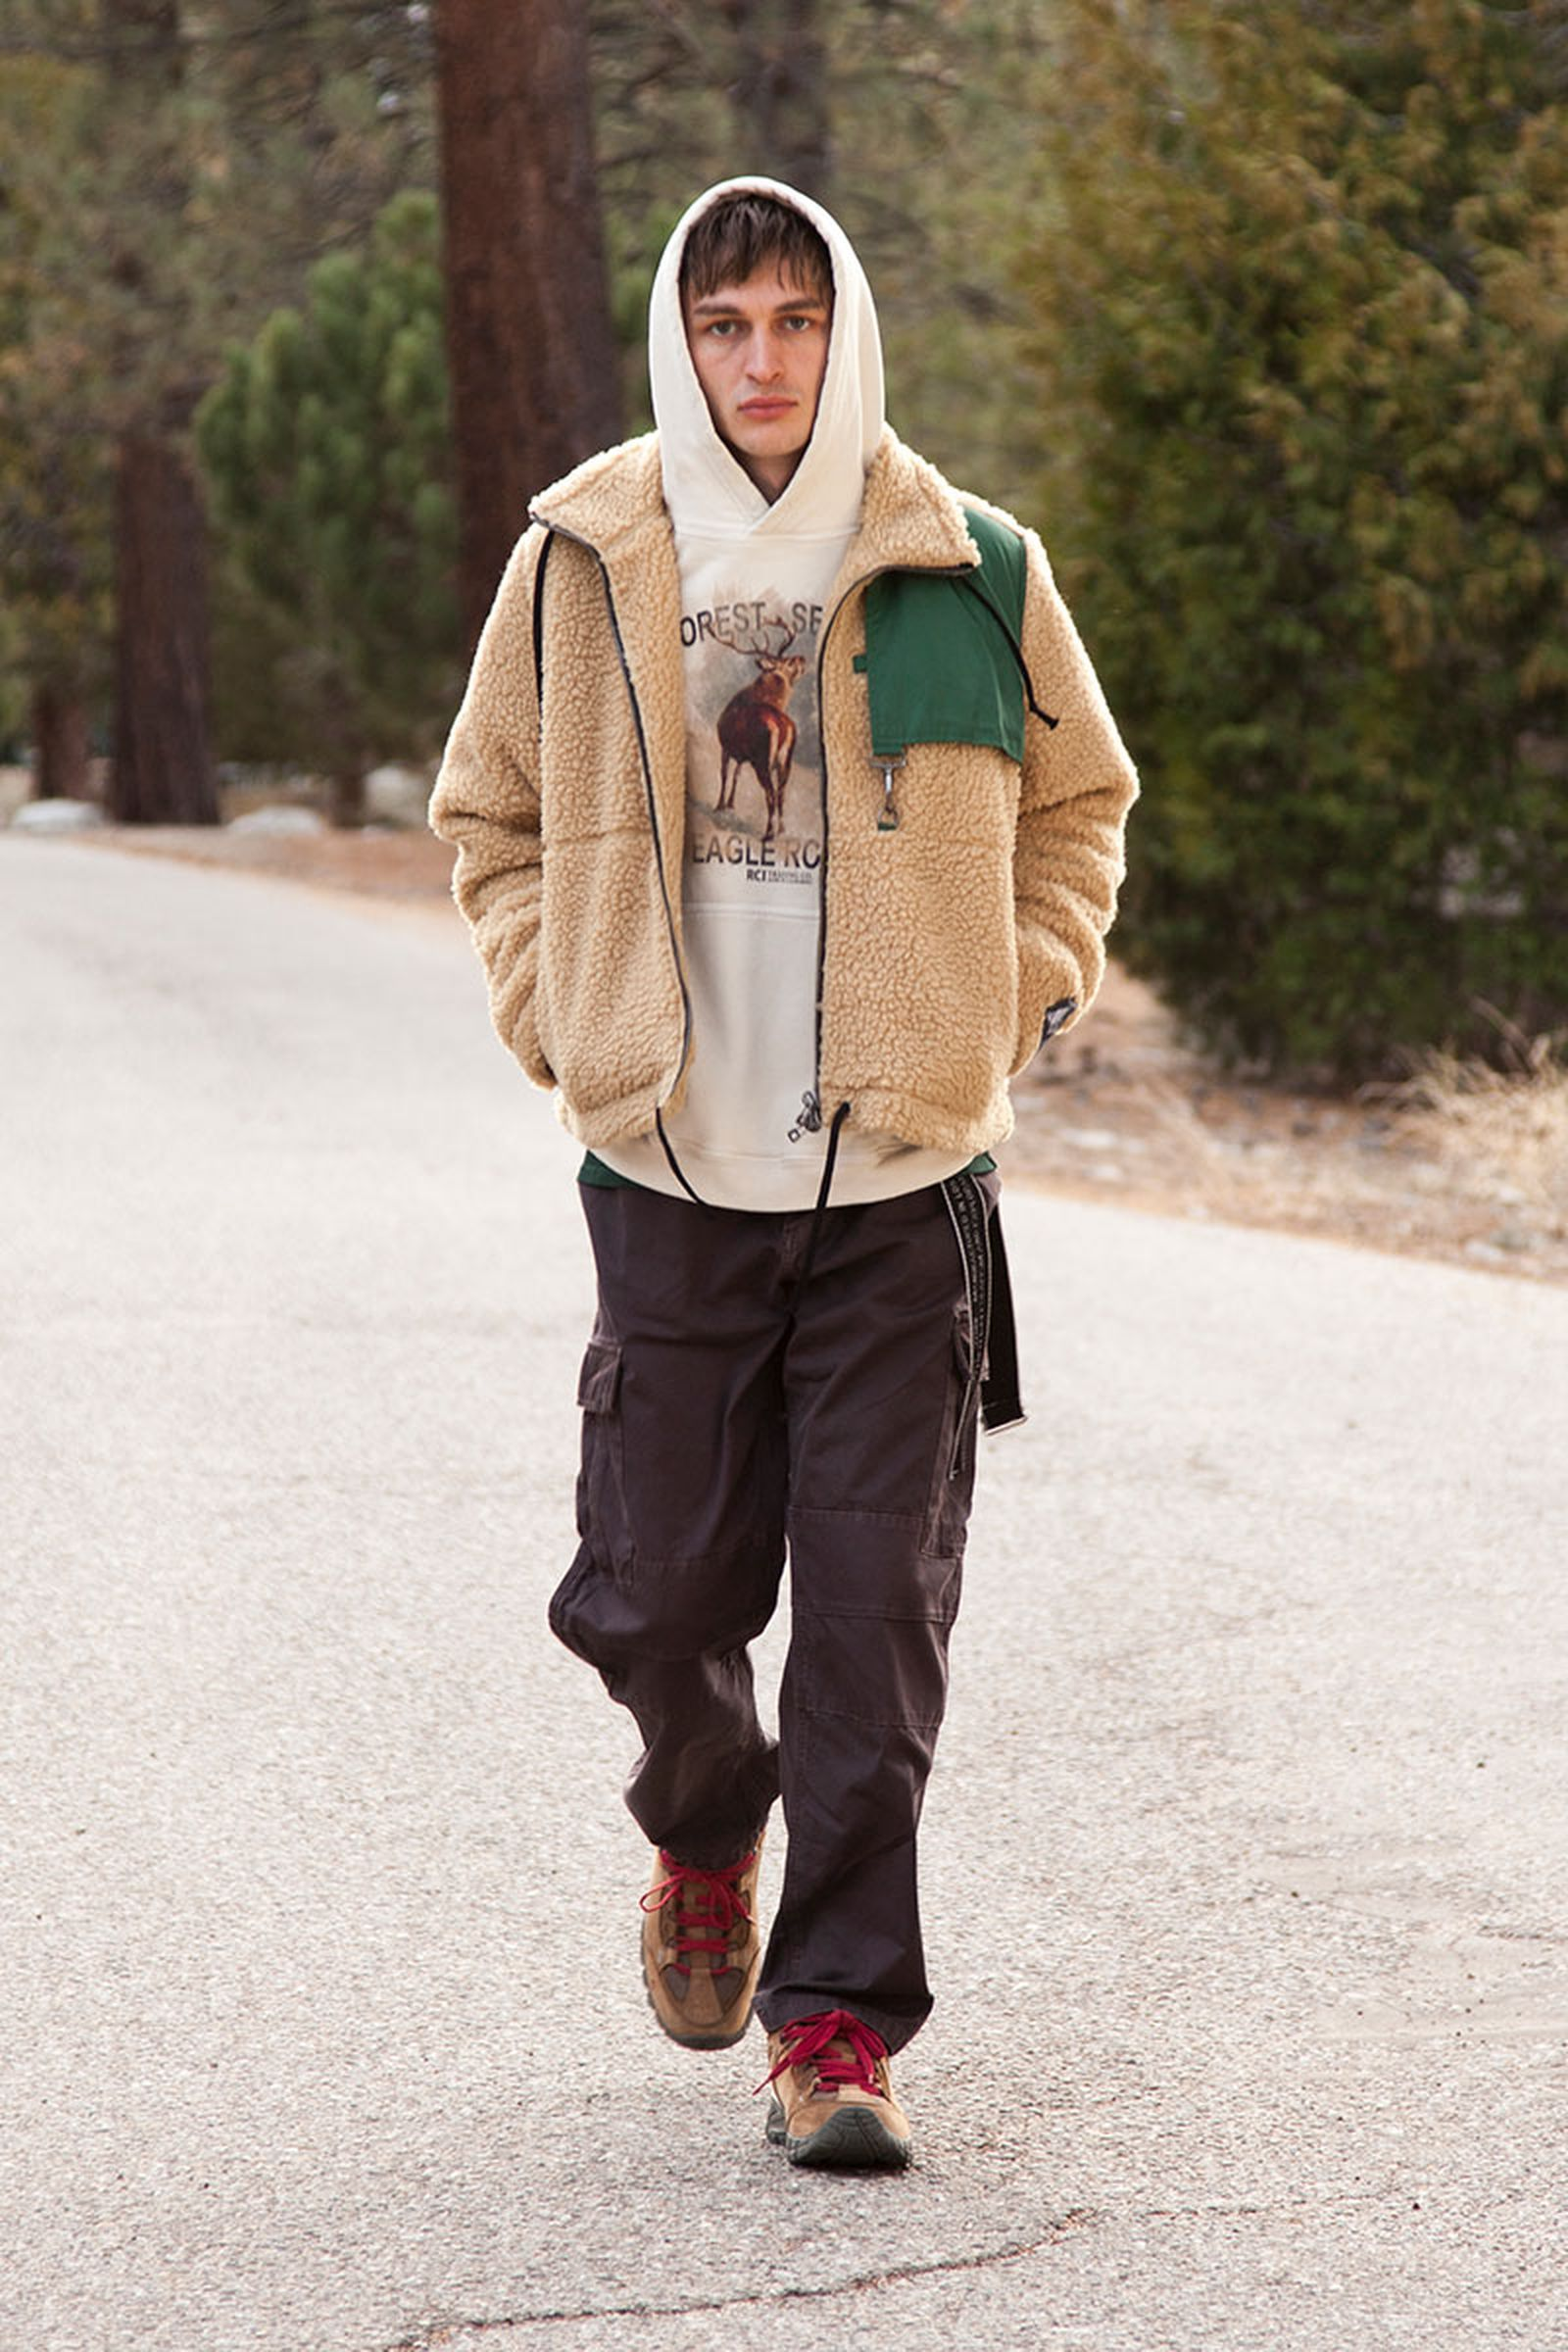 Reese cooper hitchhiking fw19